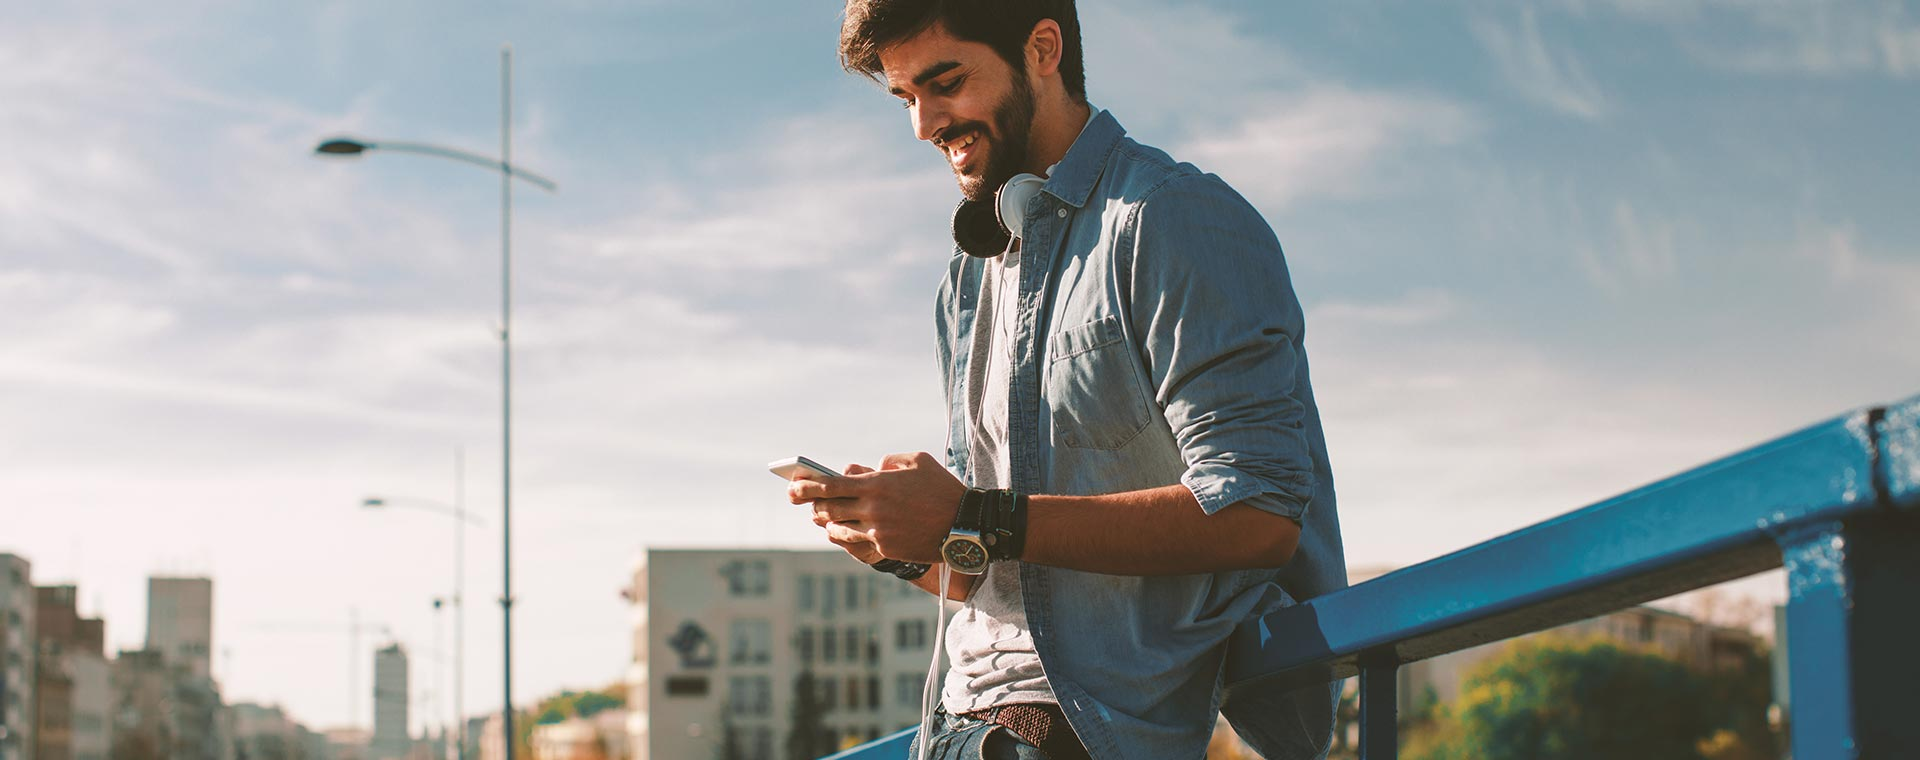 A young man leans against a bridge rail, with a cityscape in the background, while his is looking down at his smartphone, smiling.